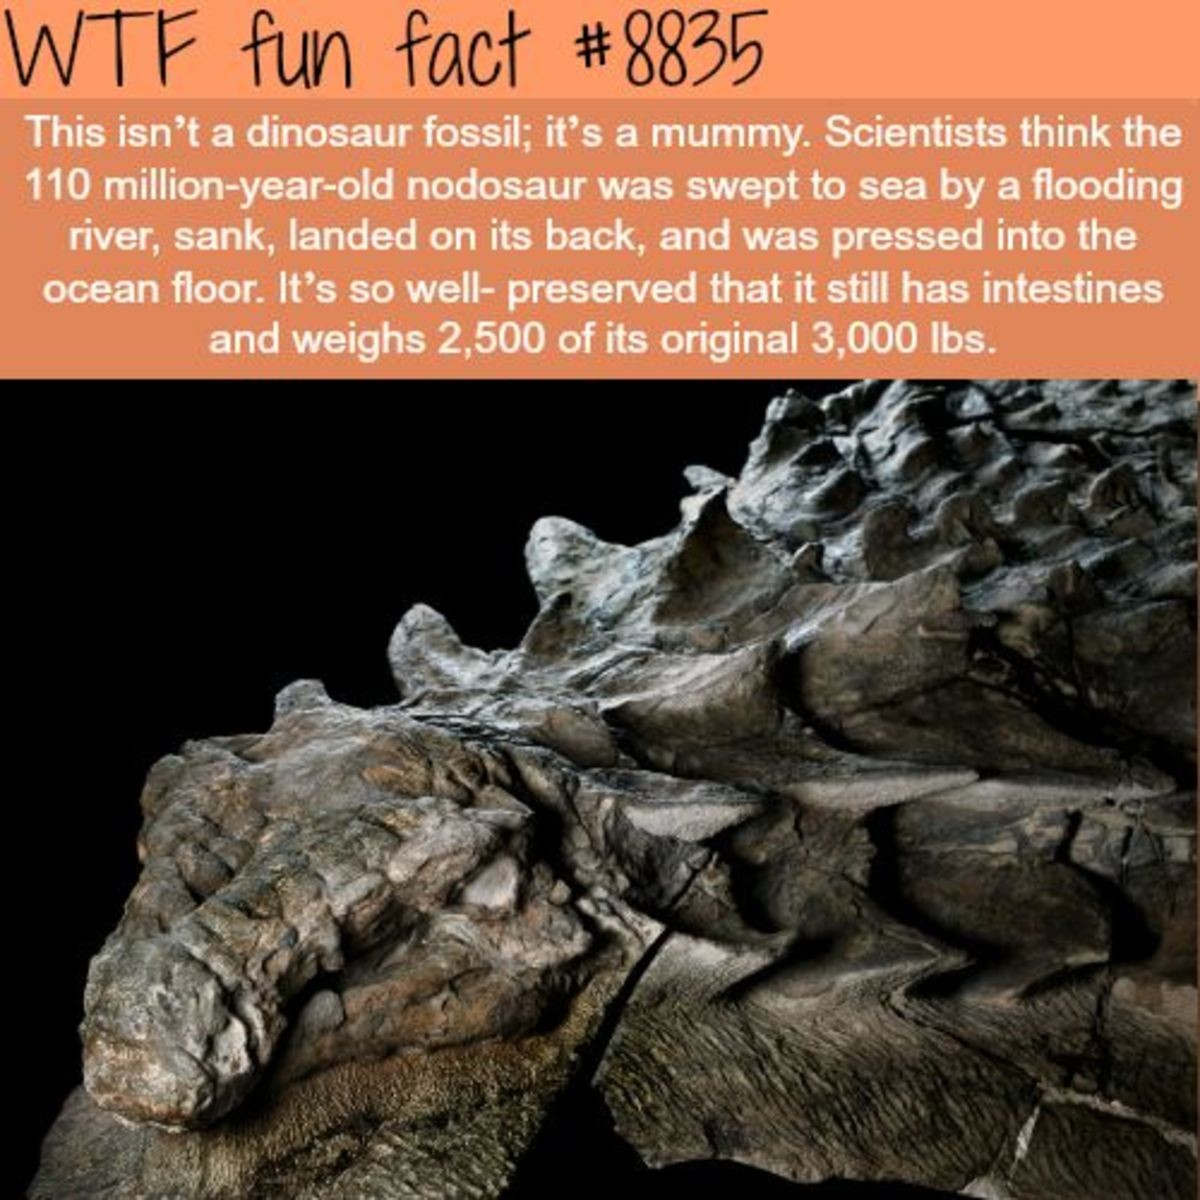 Mummy Dinosaur. .. if this is true there's a solid chance we'd be able to revive that species through the preserved dna